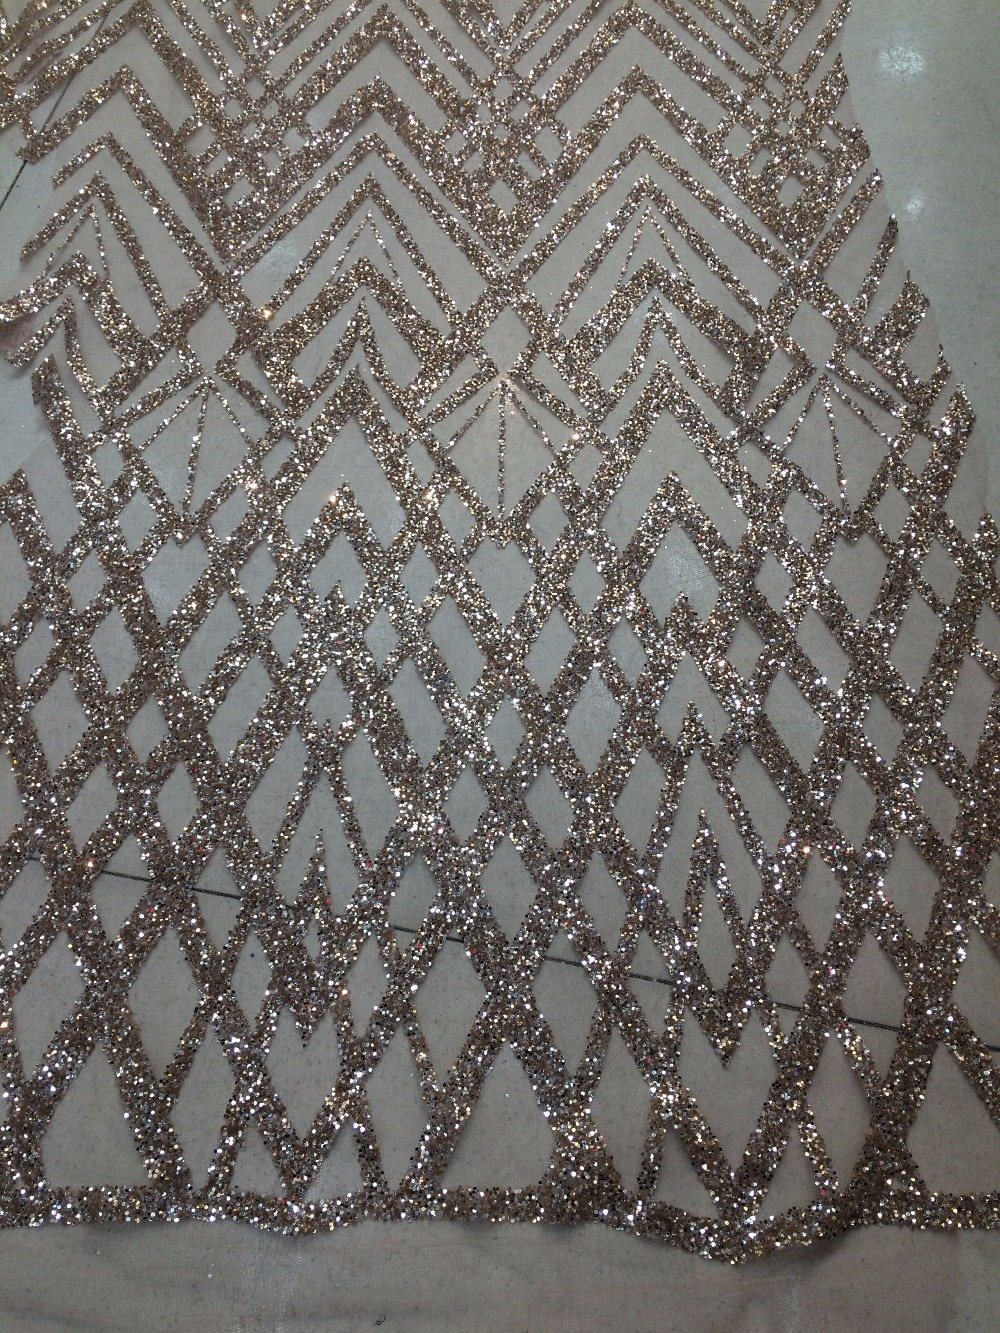 shining jianxi 31712 glitter sequins glued embroidery african tulle mesh fabric